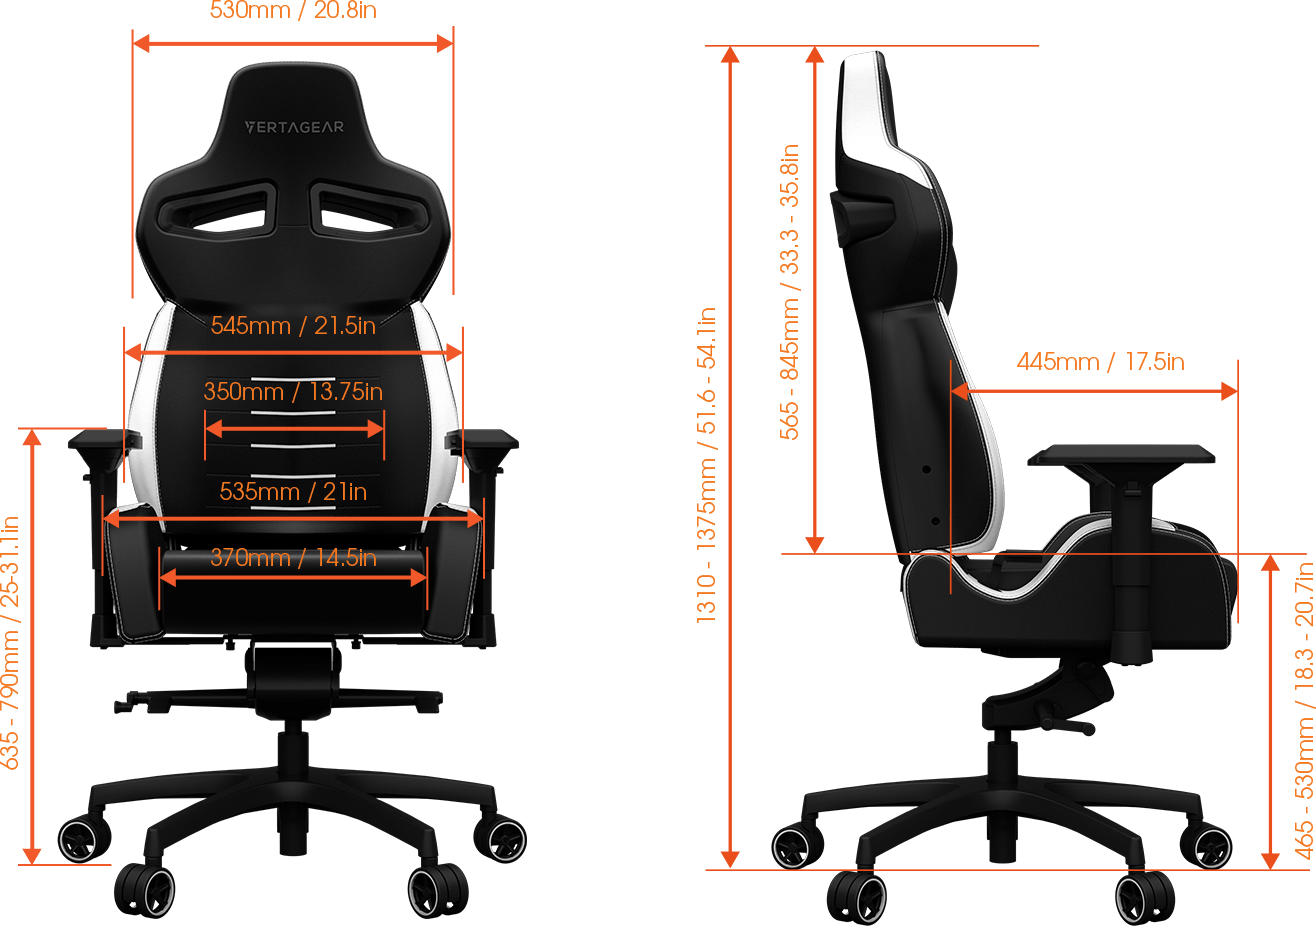 Cloud 9 Gaming Chair Vertagear Pl4500 Big And Tall Gaming Chair Up To 440lbs